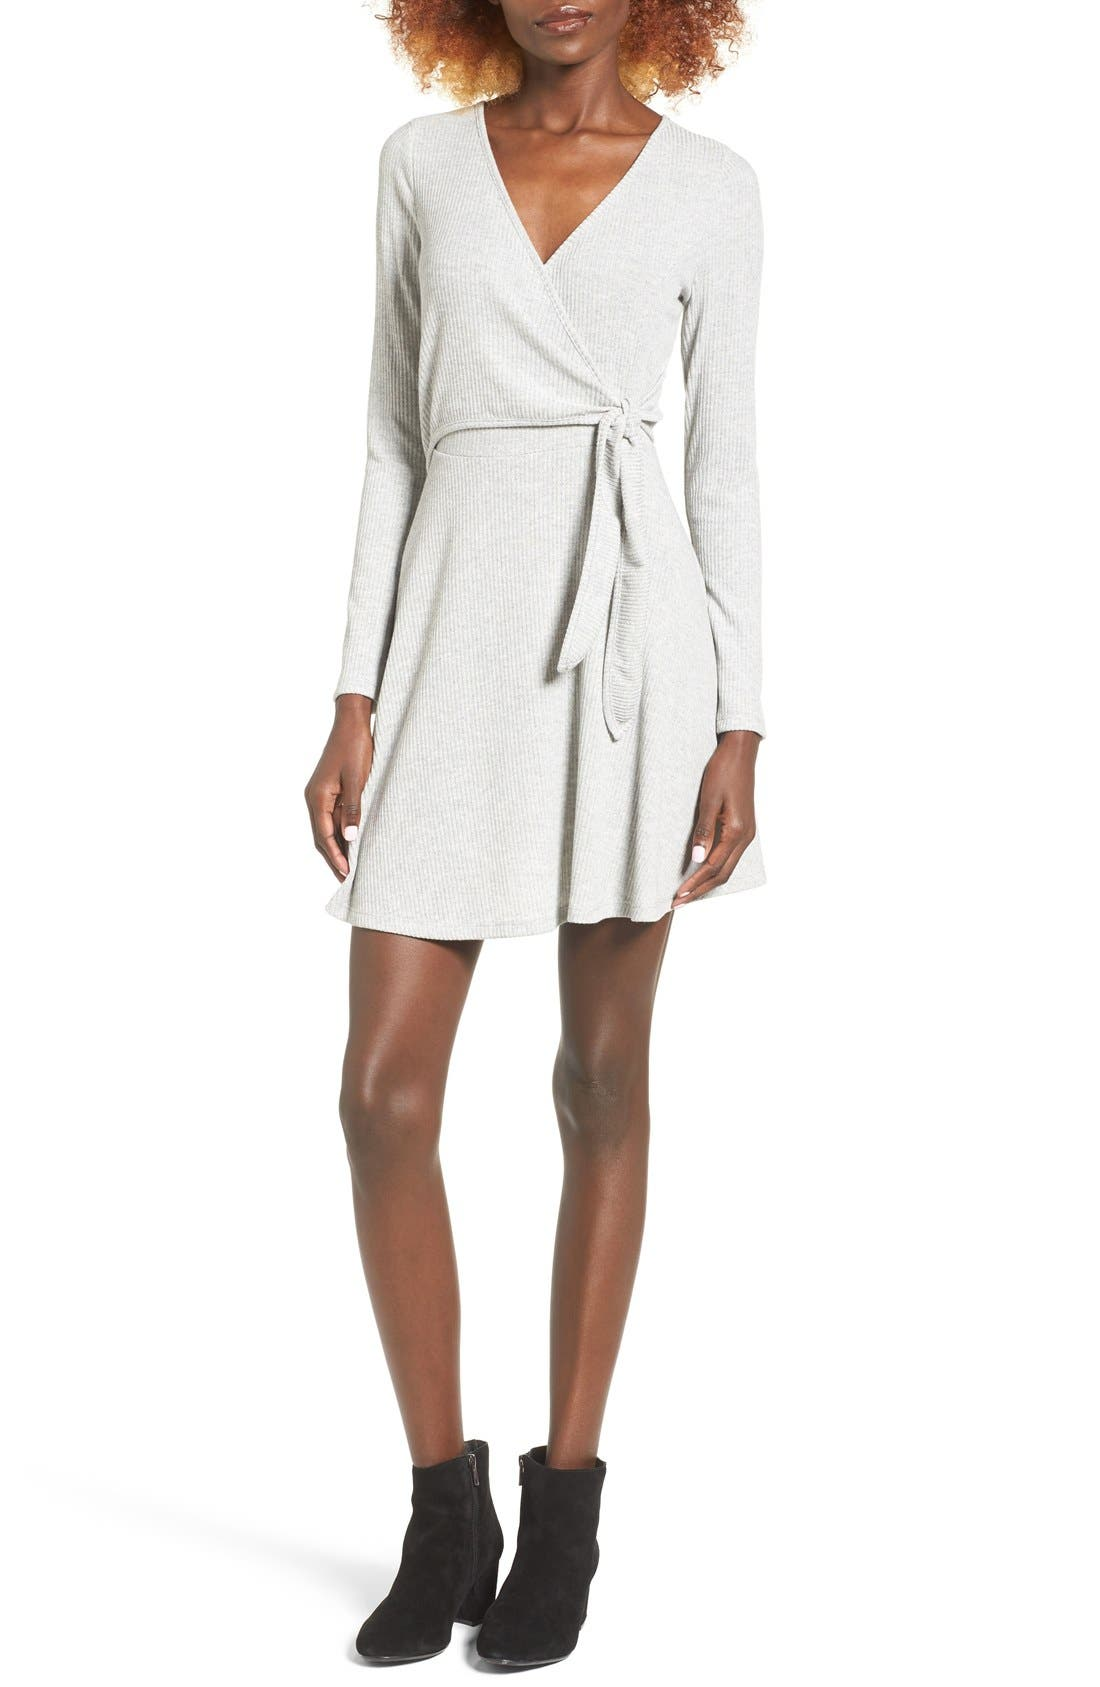 Alternate Image 1 Selected - Everly Rib Knit Wrap Dress